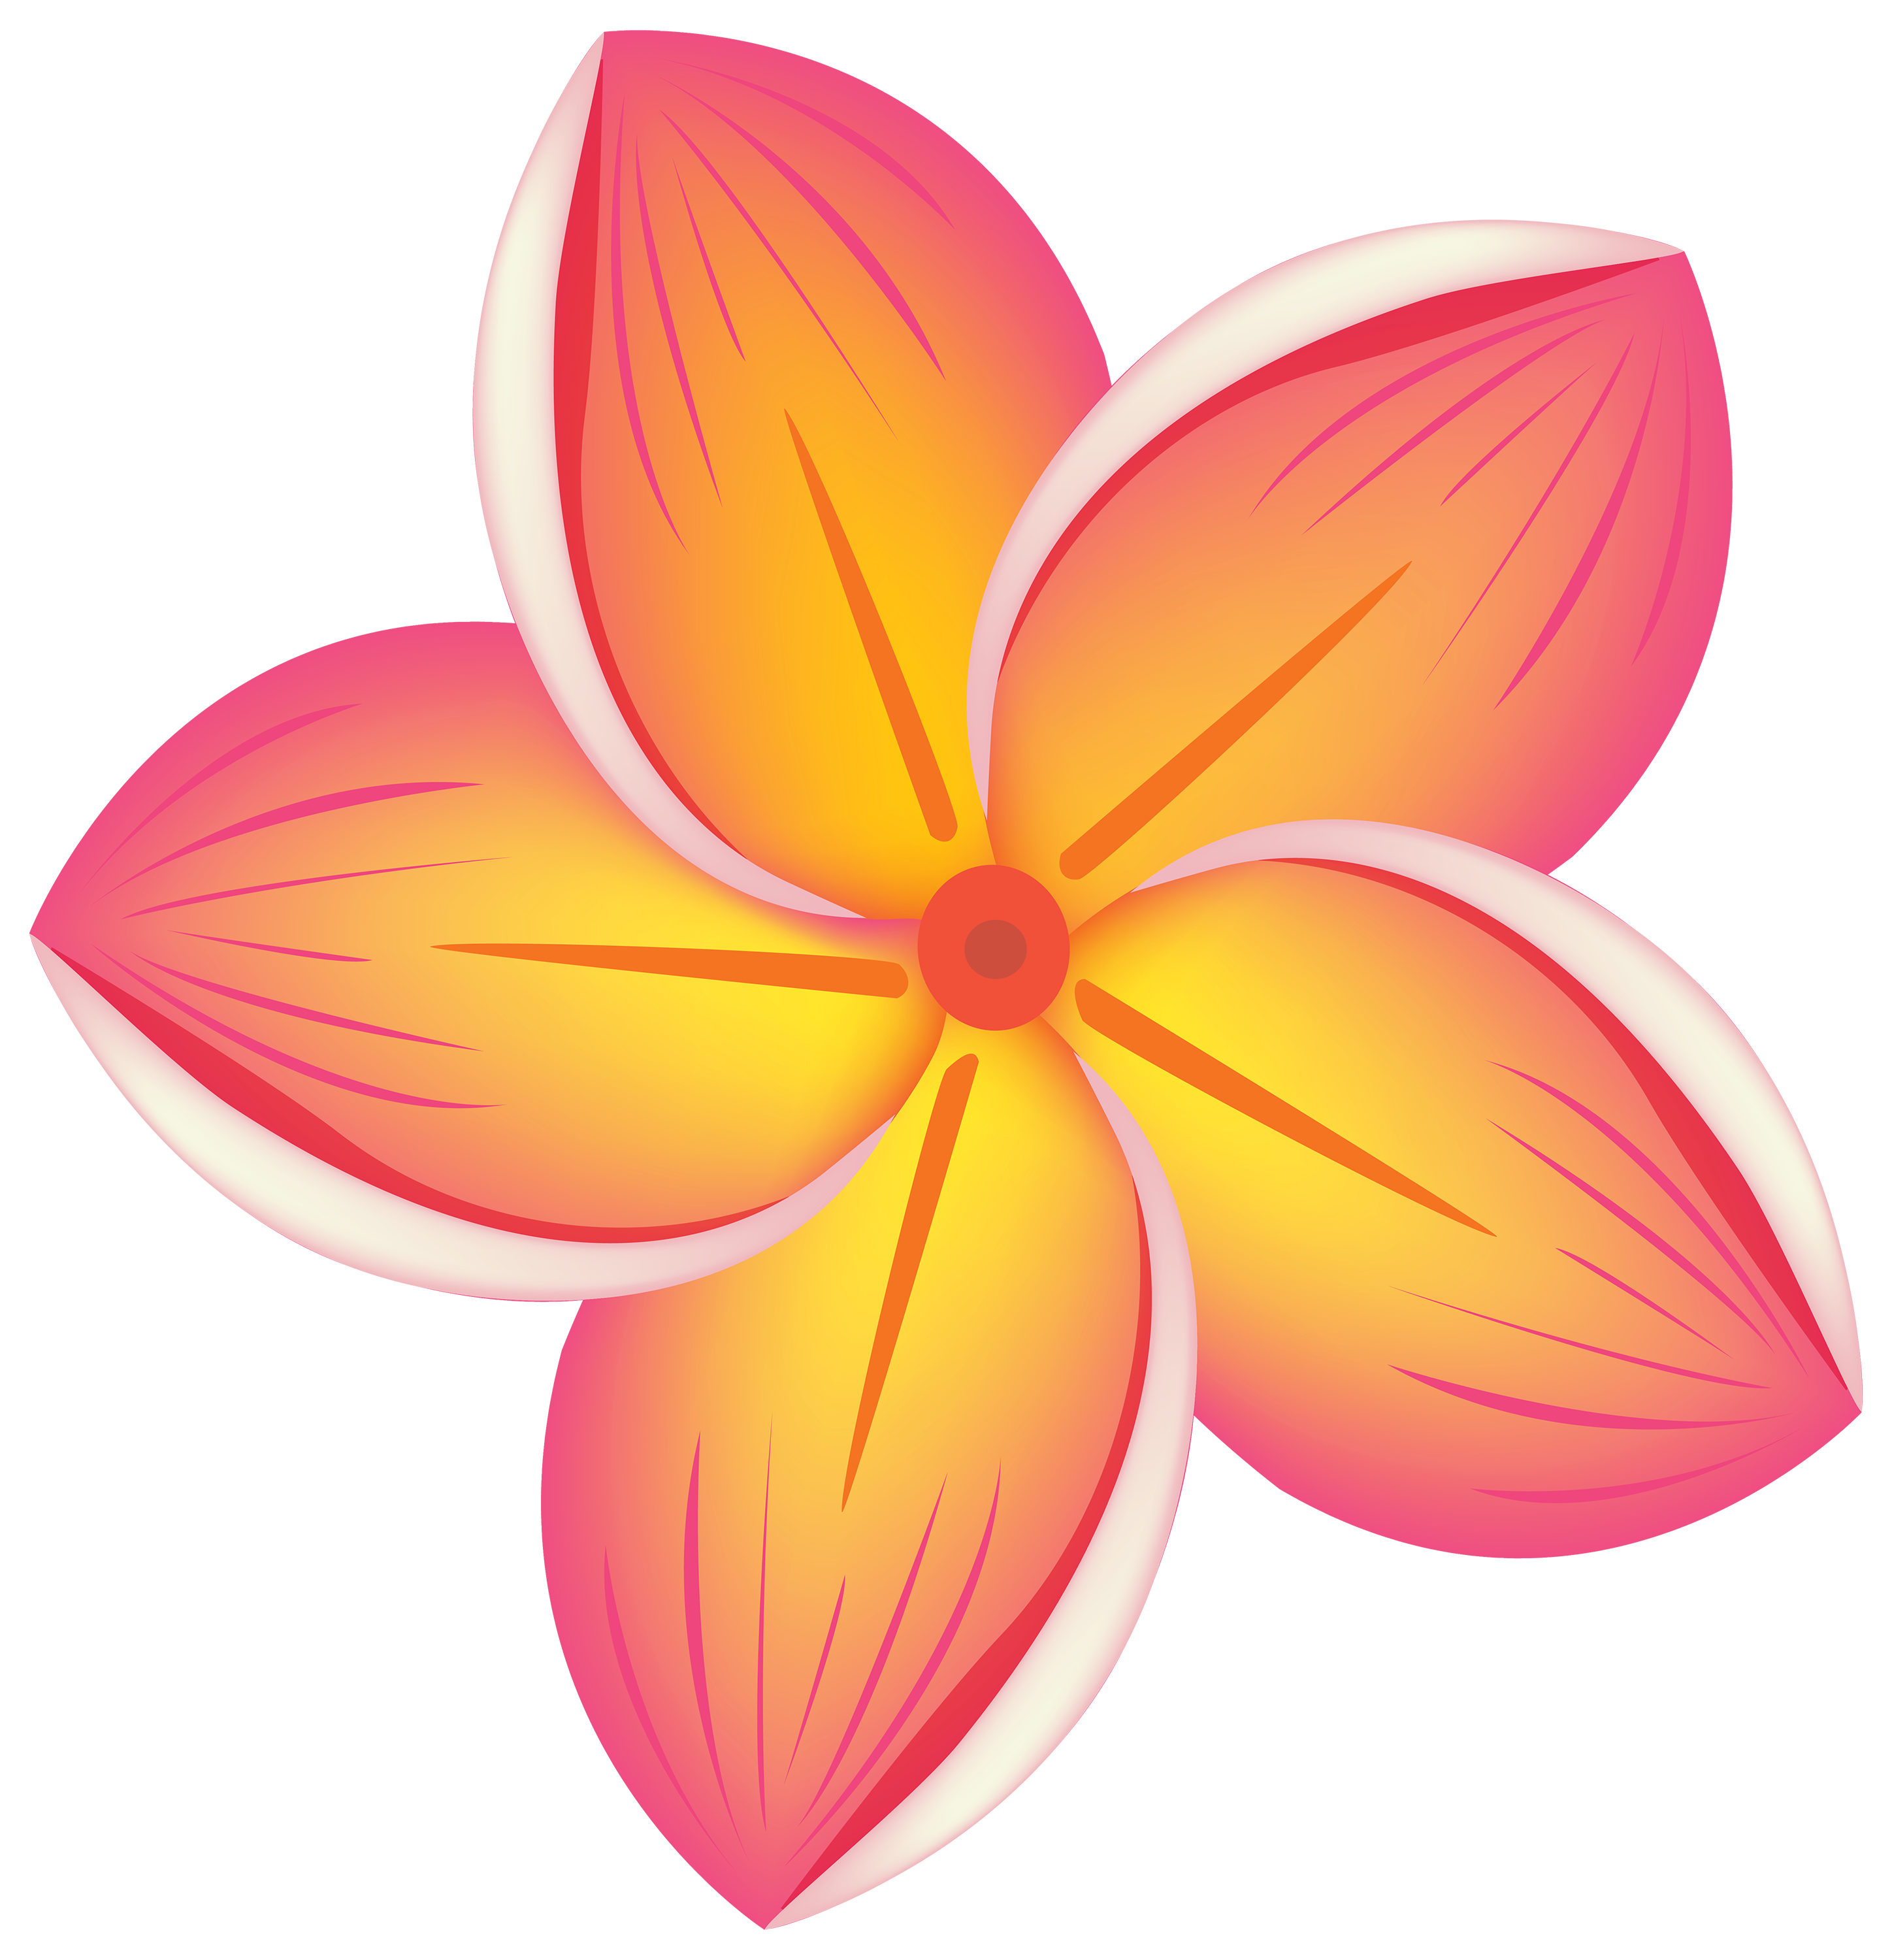 Flowers clipart.